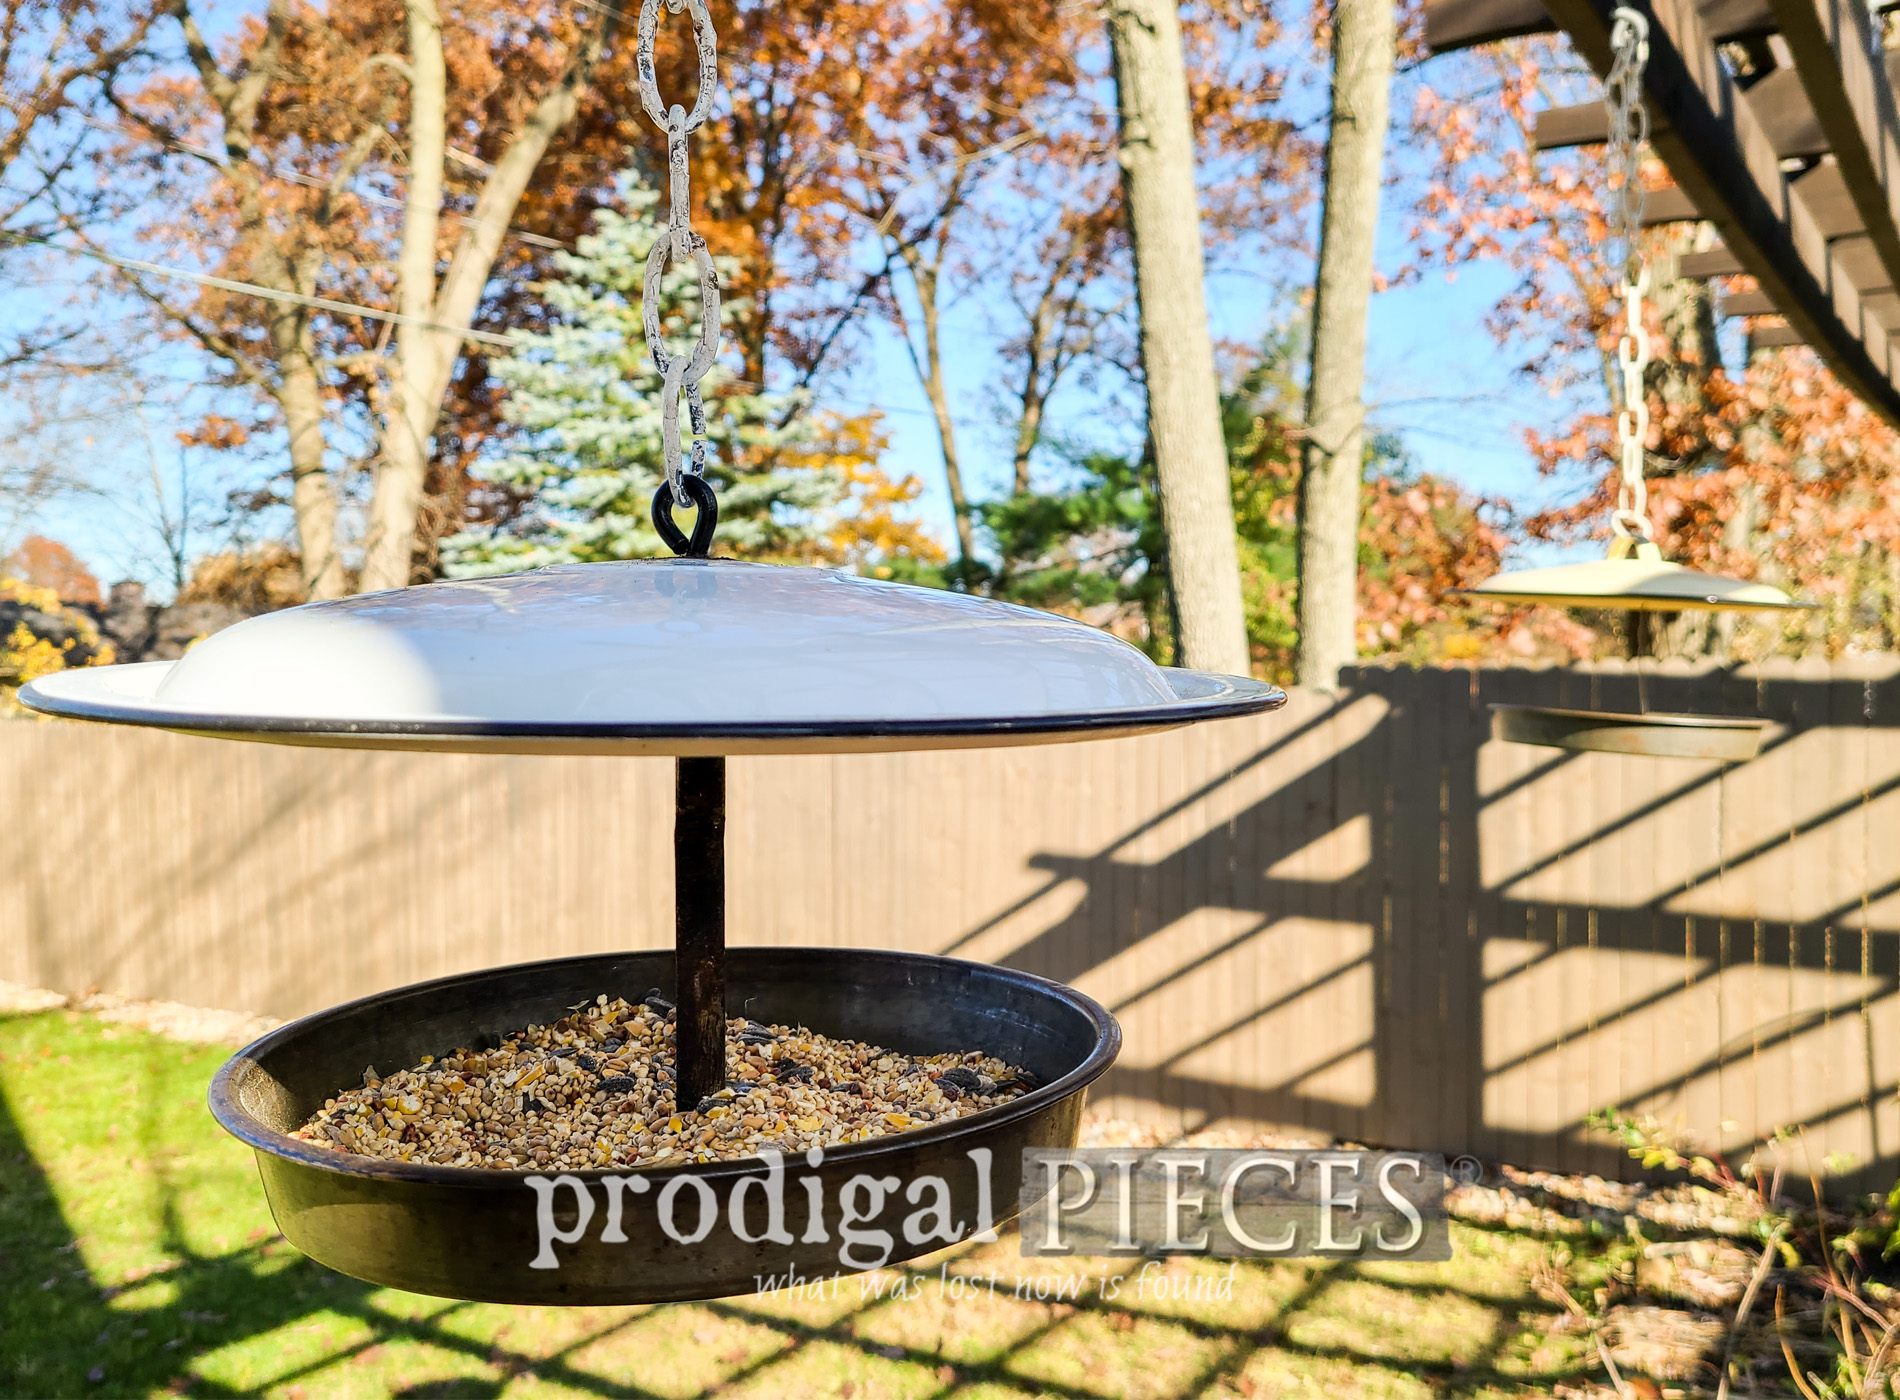 Featured Upcycled Bird Feeder from Enamel Pot Lids by Larissa of Prodigal Pieces | prodigalpieces.com #prodigalpieces #nature #birdfeeder #upcycle #gardening